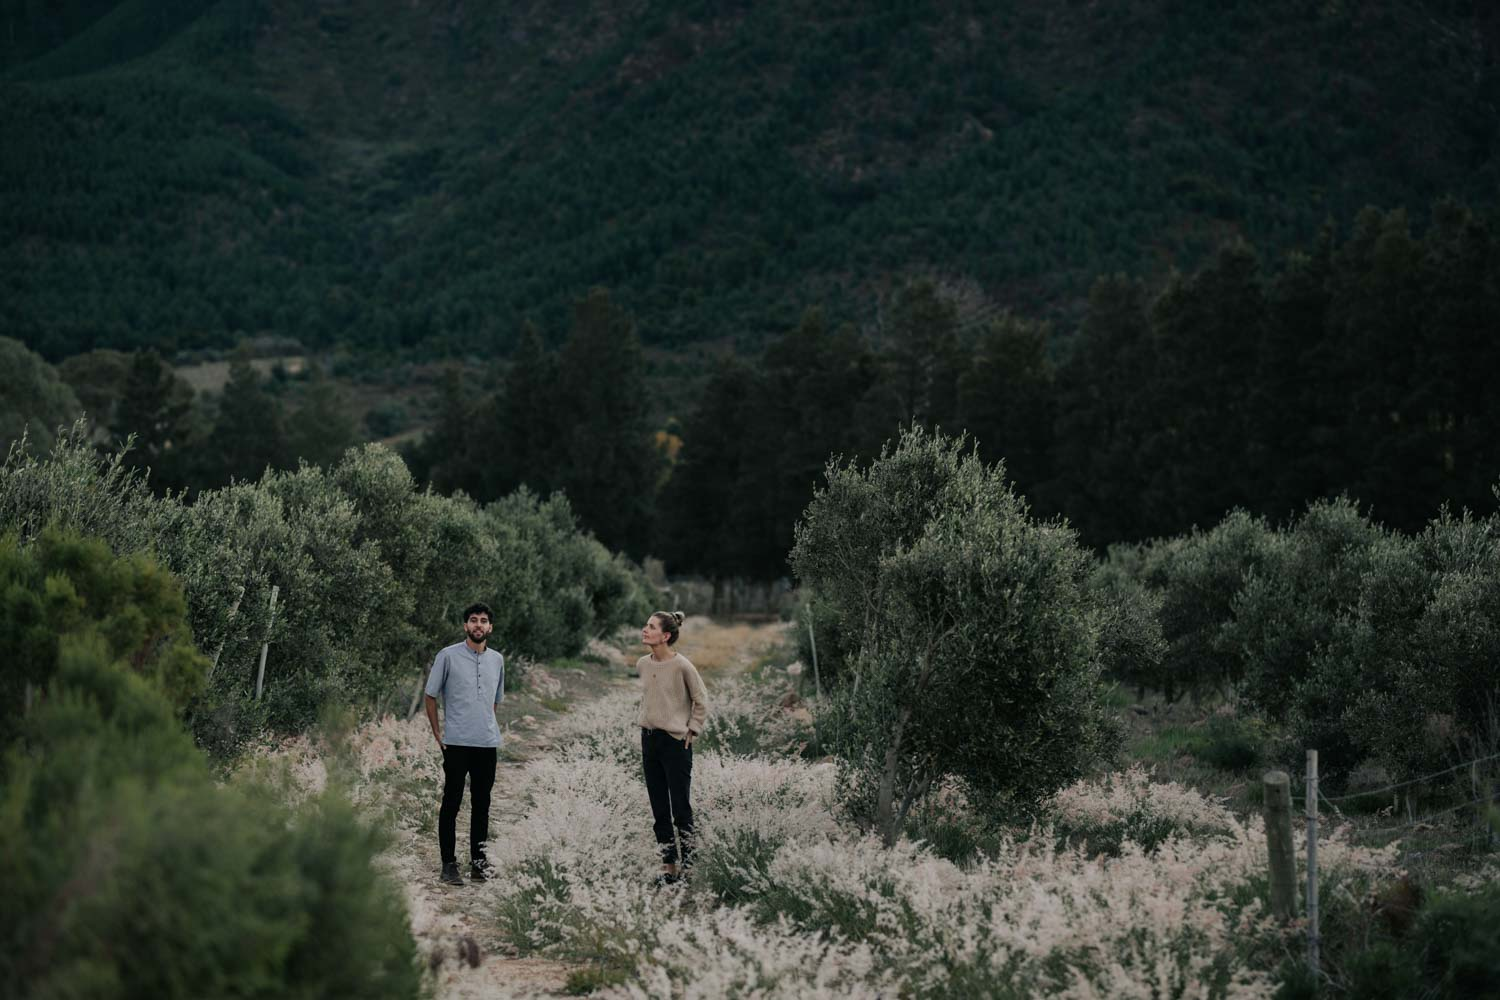 Couple stands in the olive trees together during their Autumn engagement photo session surrounded by mountains